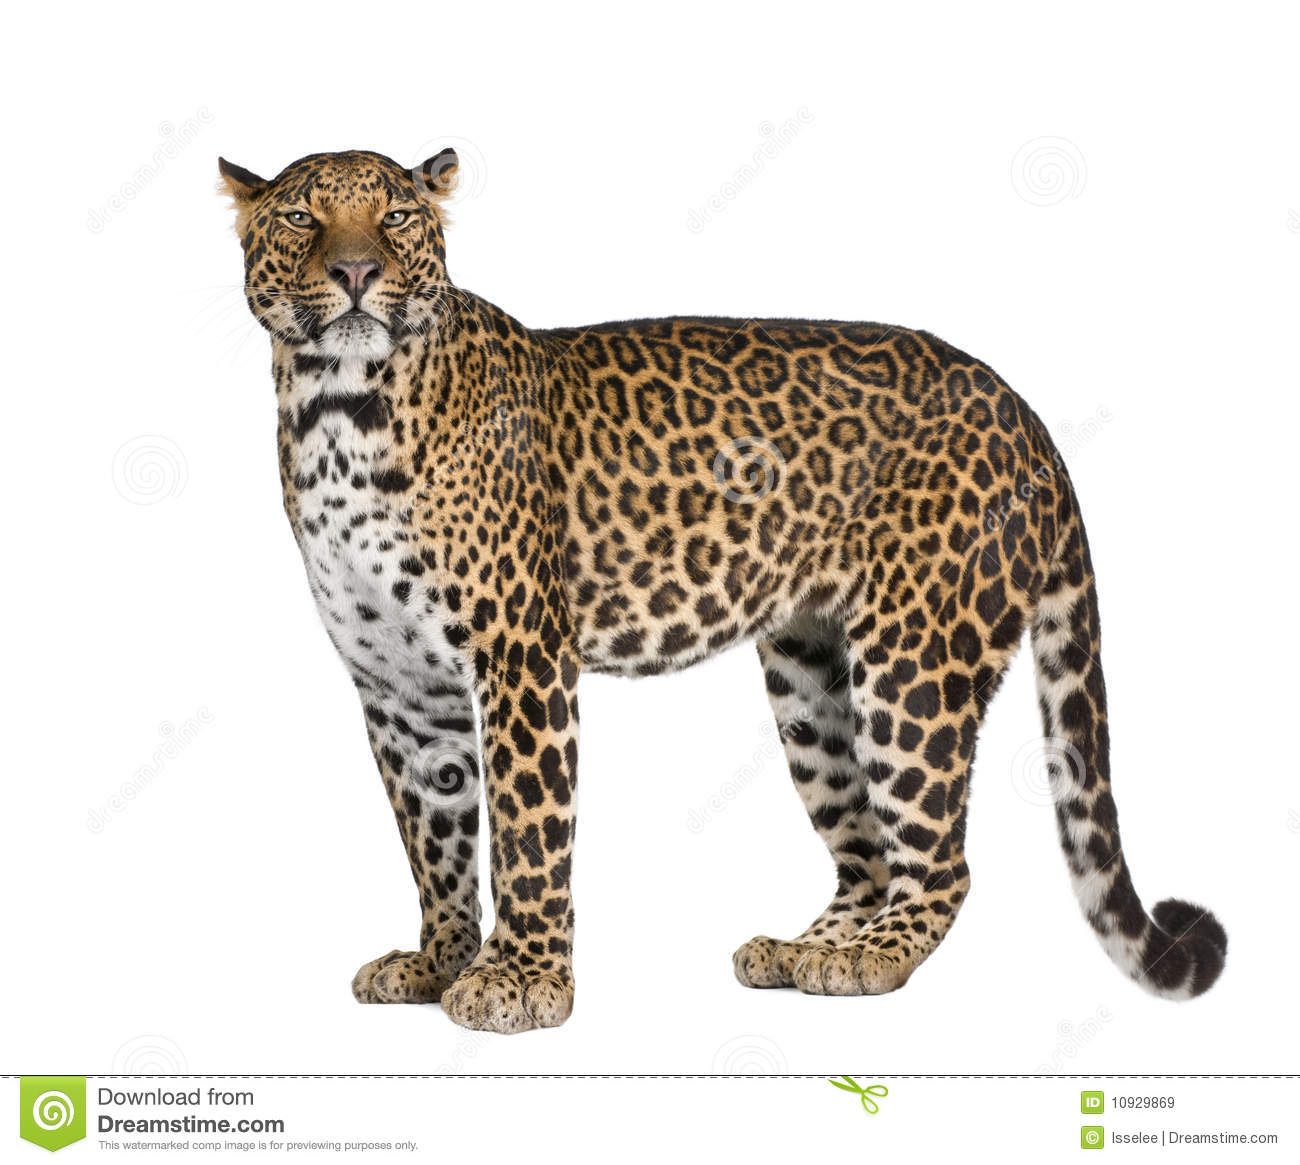 pardus map with Royalty Free Stock Images Leopard Front White Background Image10929869 on Stock Image Labrador Retriever Puppy Standing Panting Months Old Isolated White Image30816291 besides Black Leopard Enoch additionally Leatherback Sea Turtle furthermore 6113245244 additionally Royalty Free Stock Images Leopard Front White Background Image10929869.